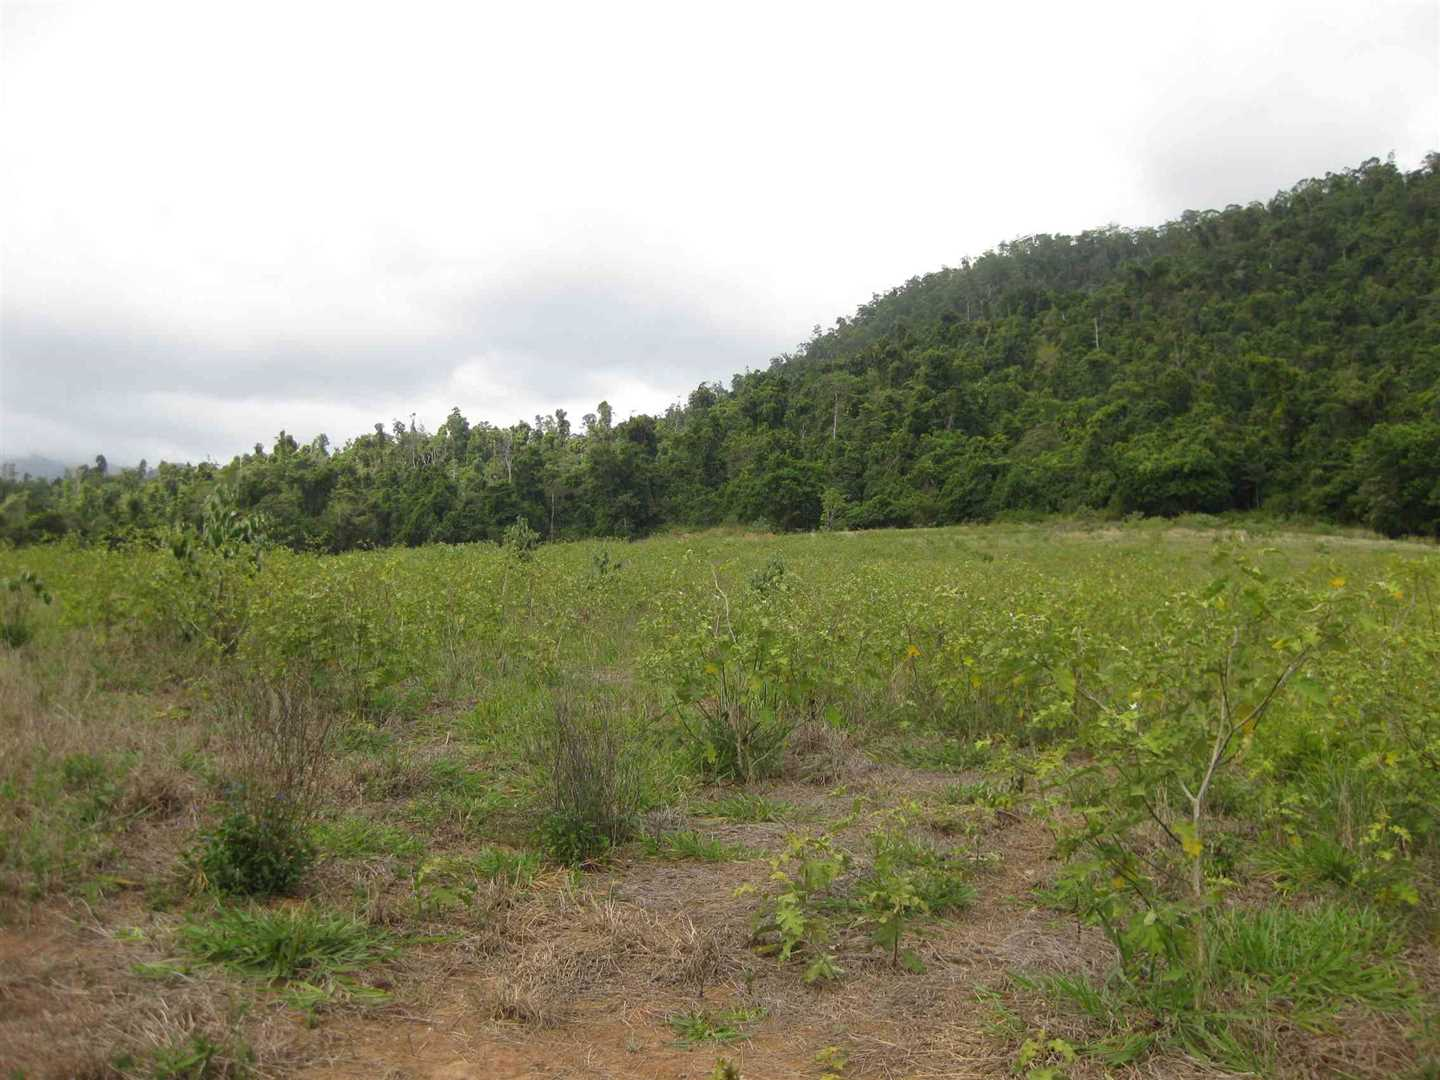 View of part of property showing some cleared undeveloped land, photo 1